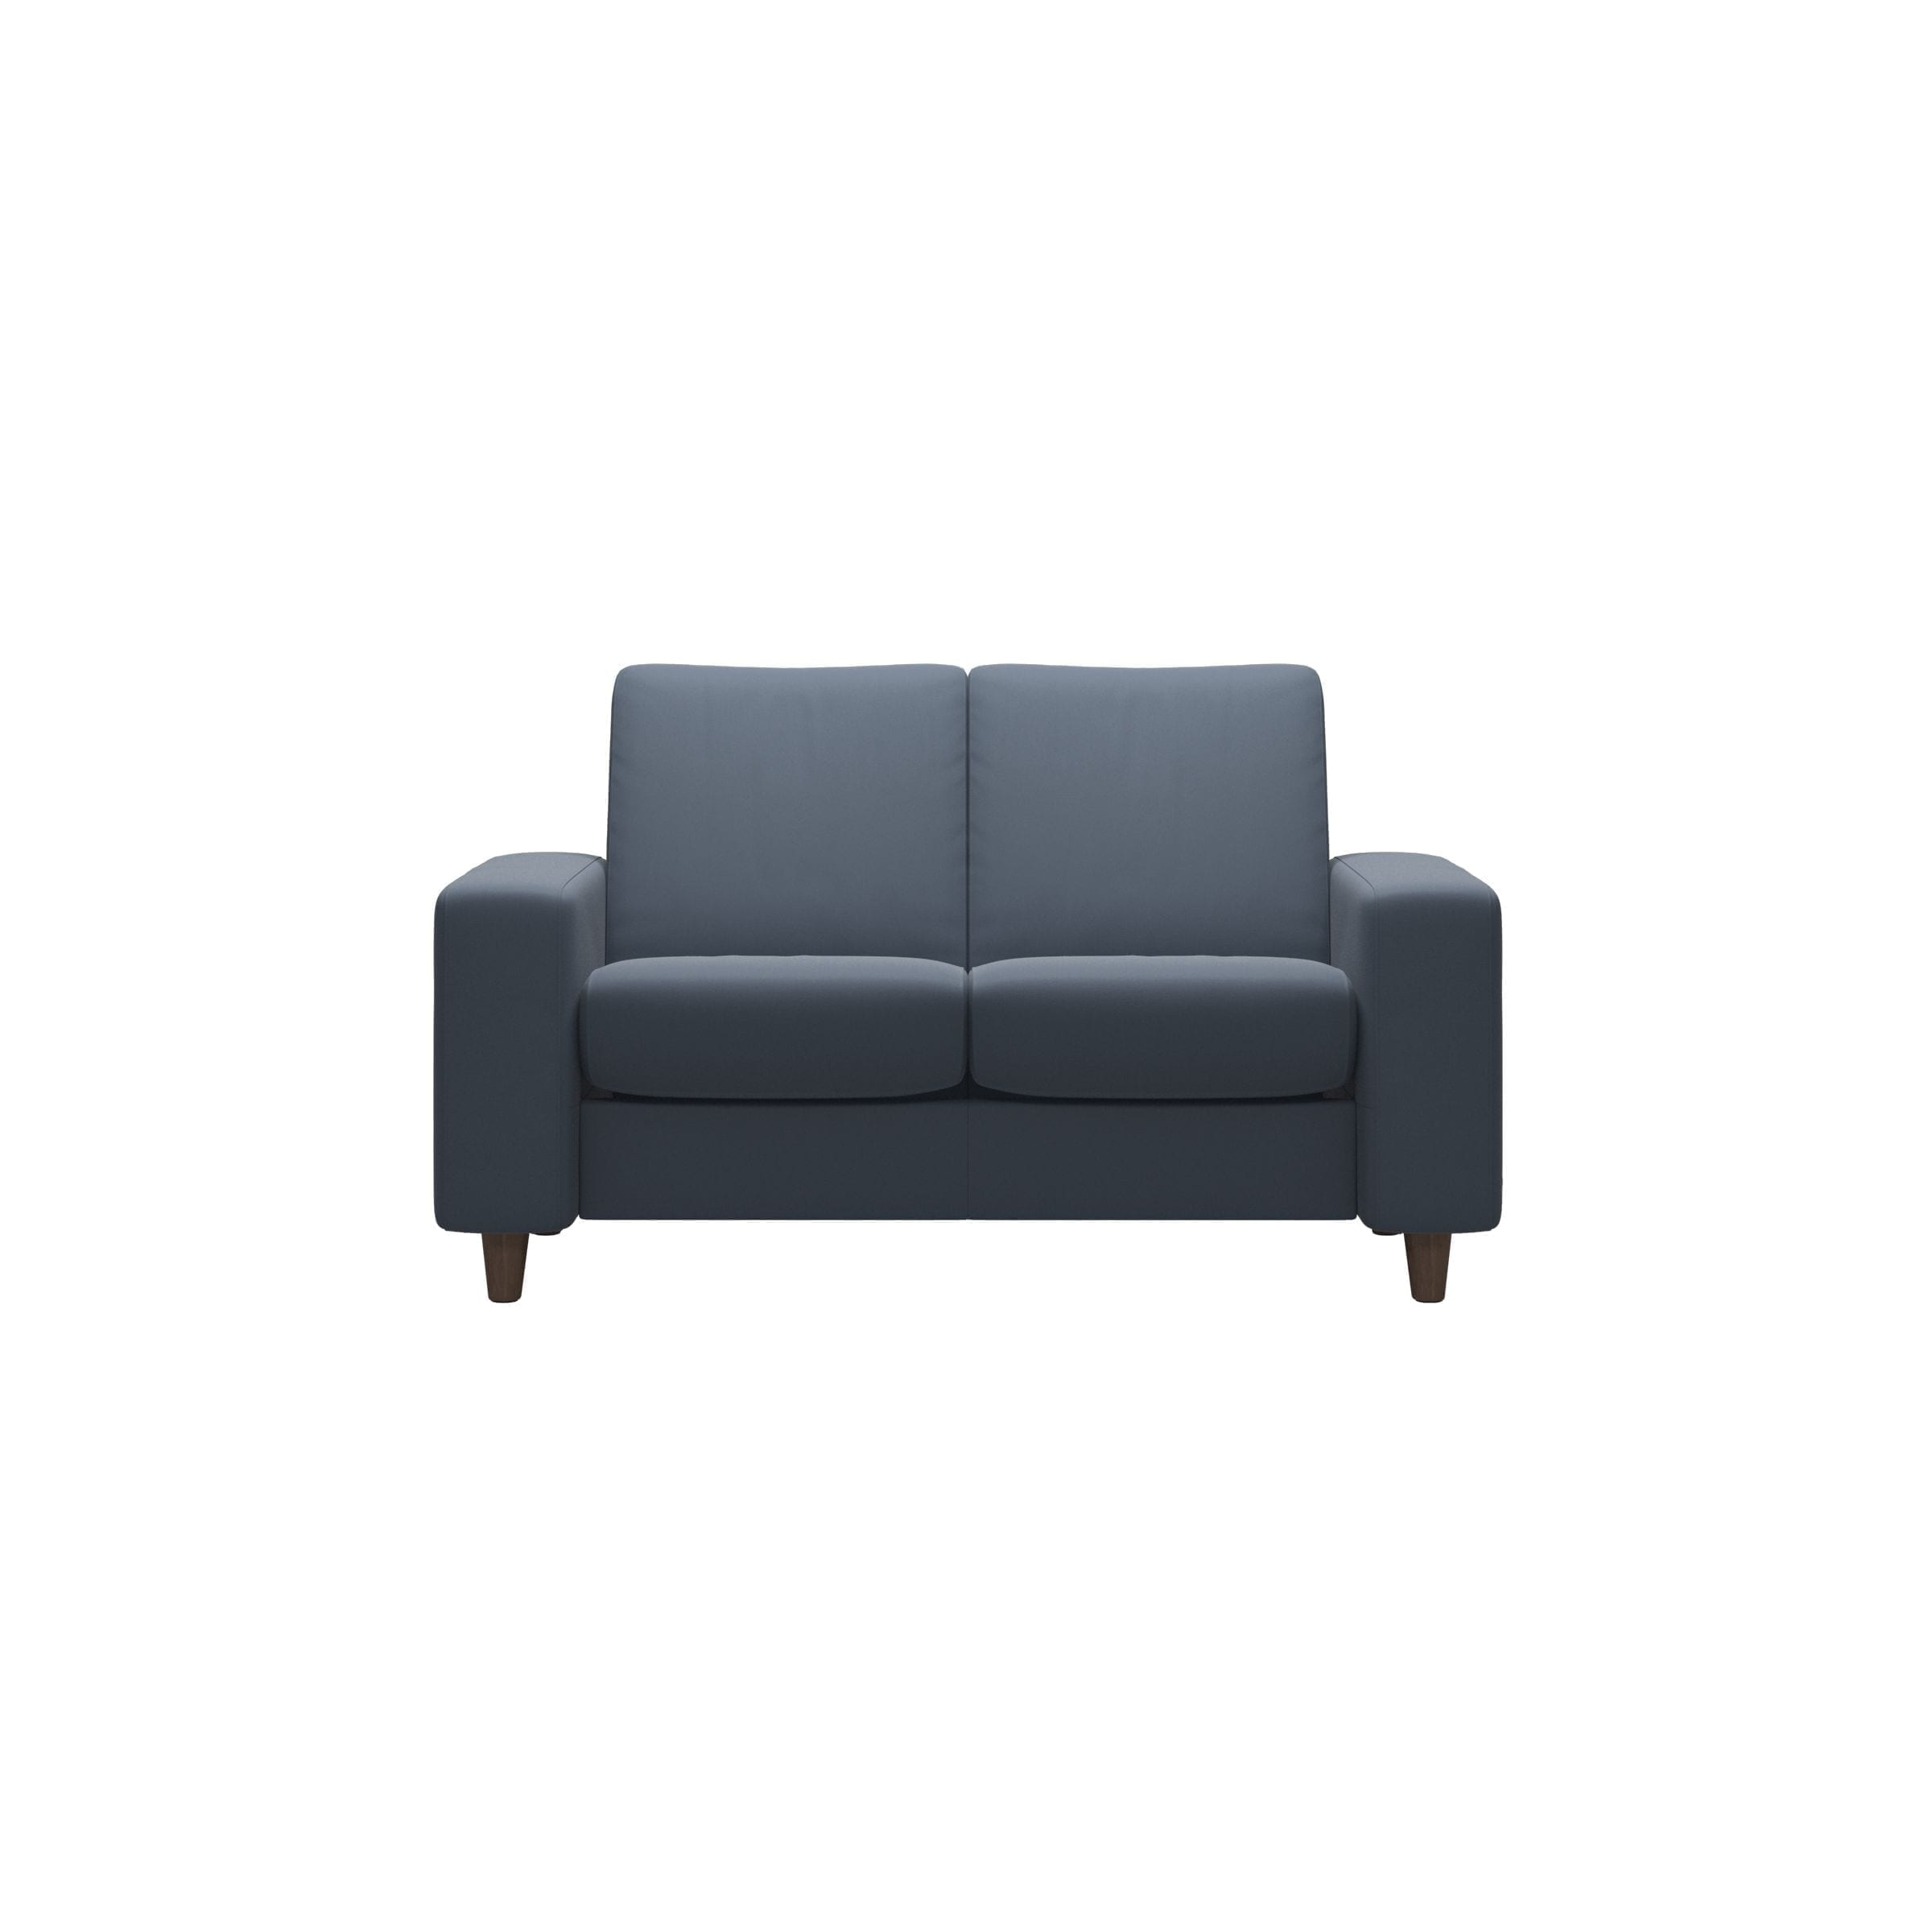 Arion 19 A20 Stressless Loveseat Low Back